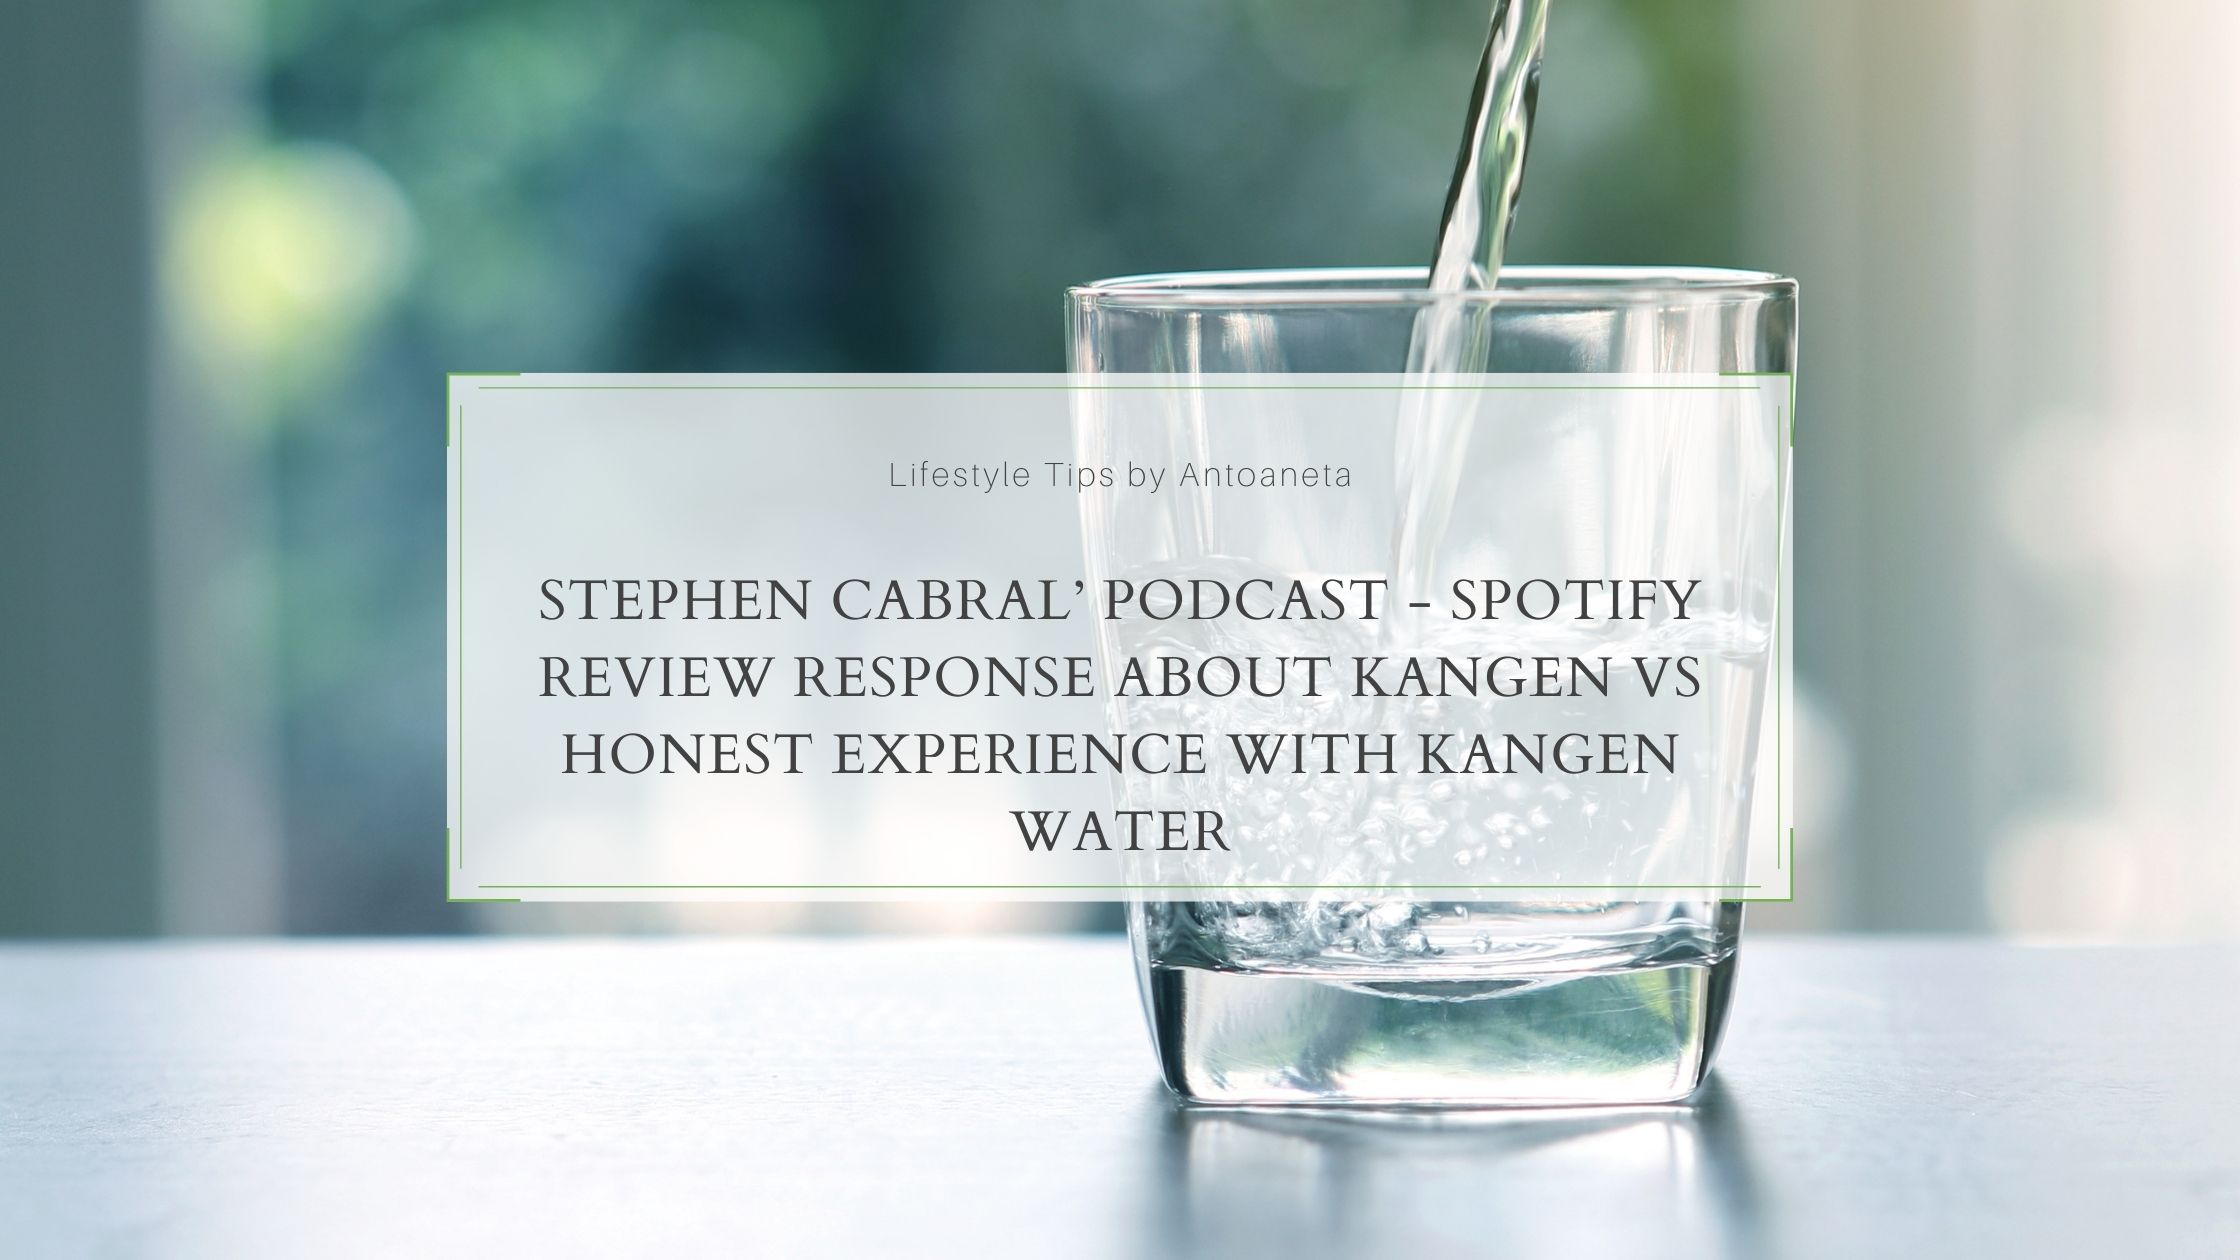 Stephen Cabral' Podcast Spotify Review Response About Kangen Vs Honest Experience With Kangen Water